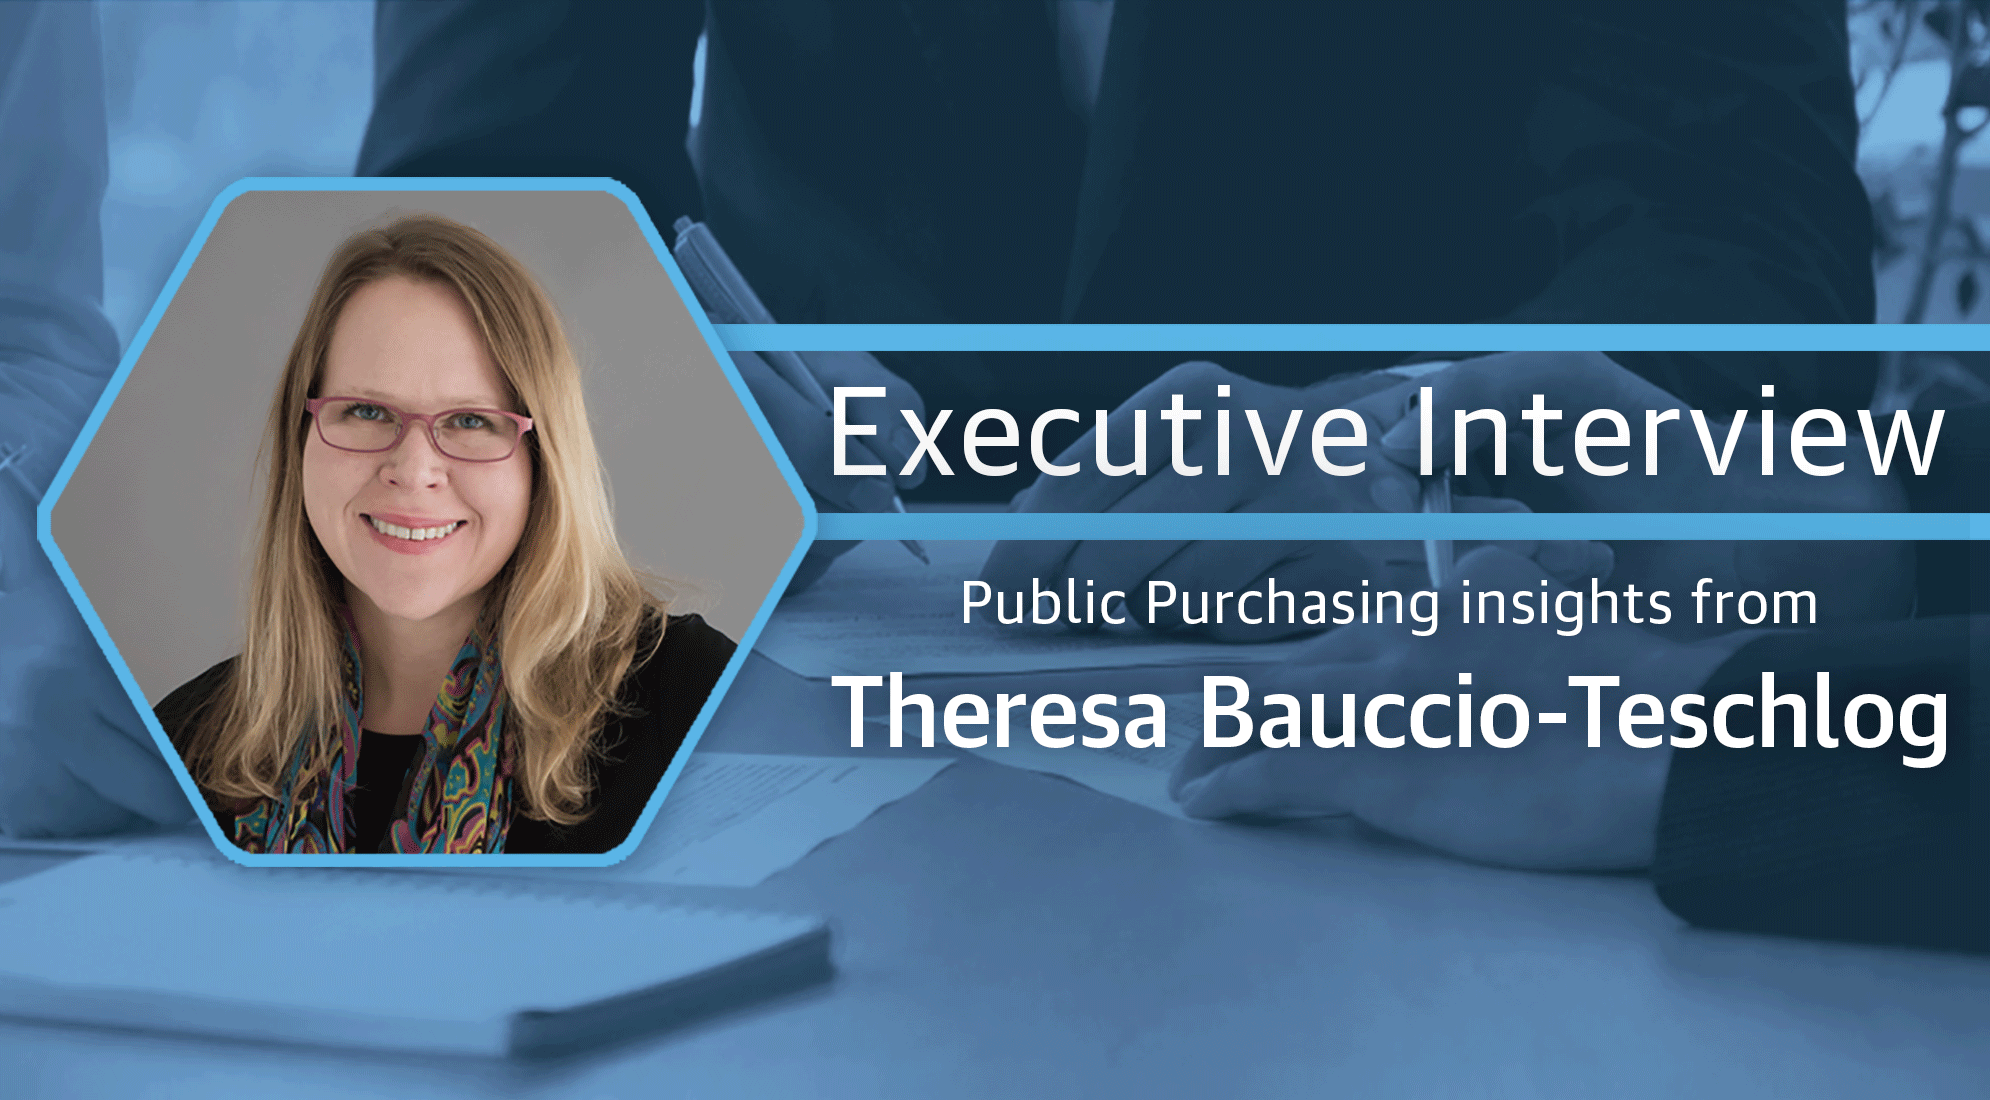 Executive Interview with Theresa Bauccio Teschlog